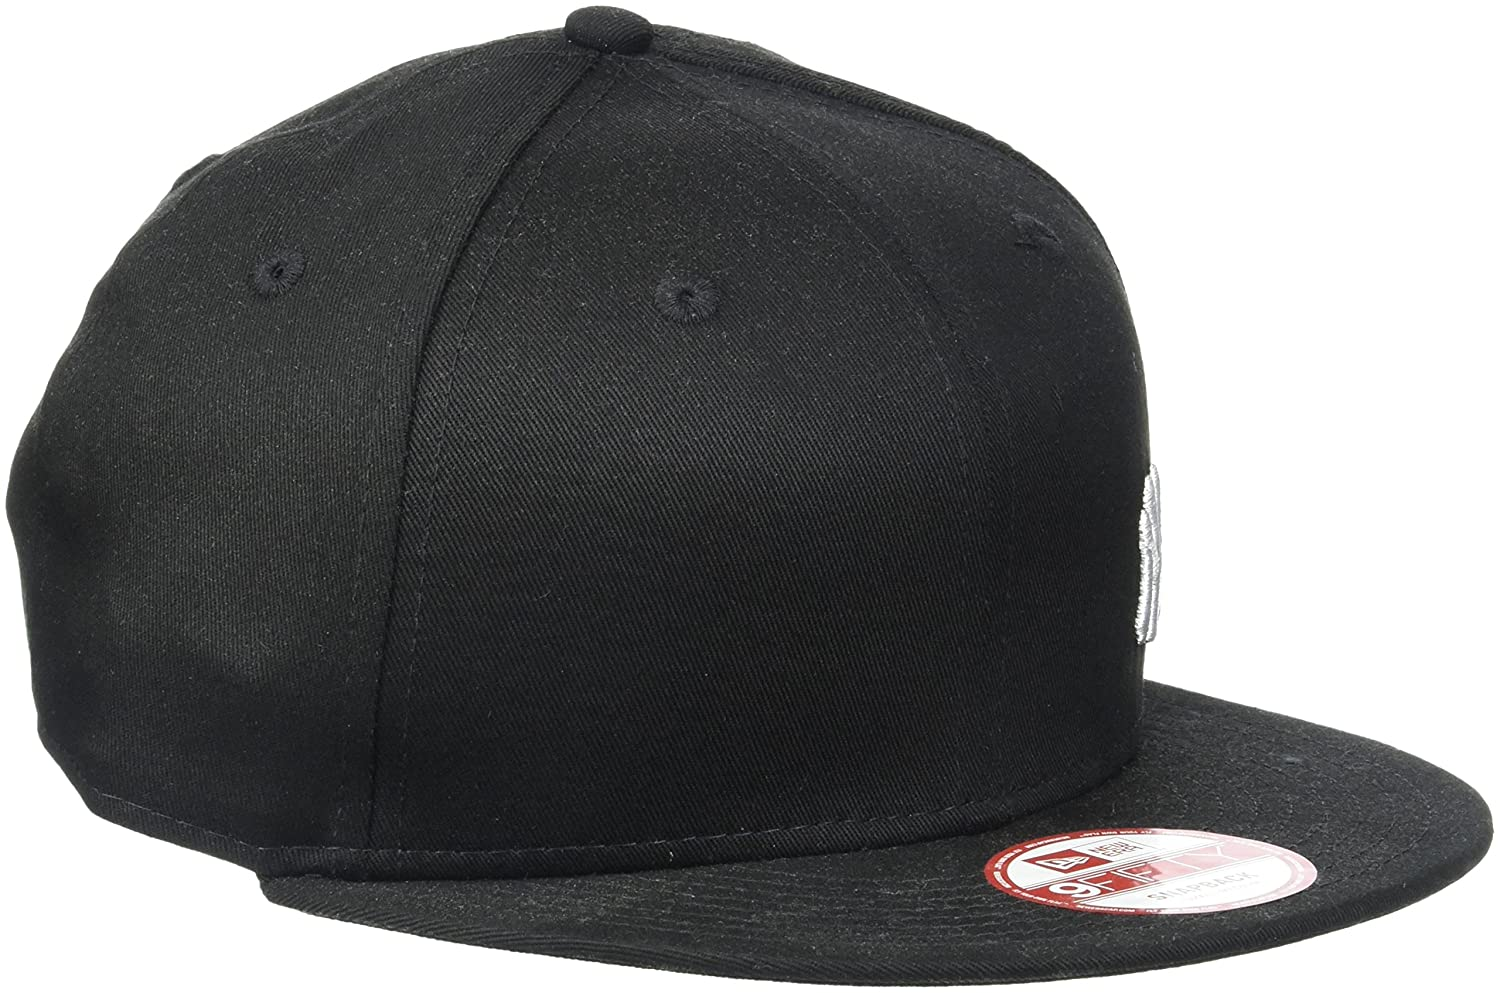 New Era MLB York Yankees Gorra Negro Negro Talla:Small/Medium ...